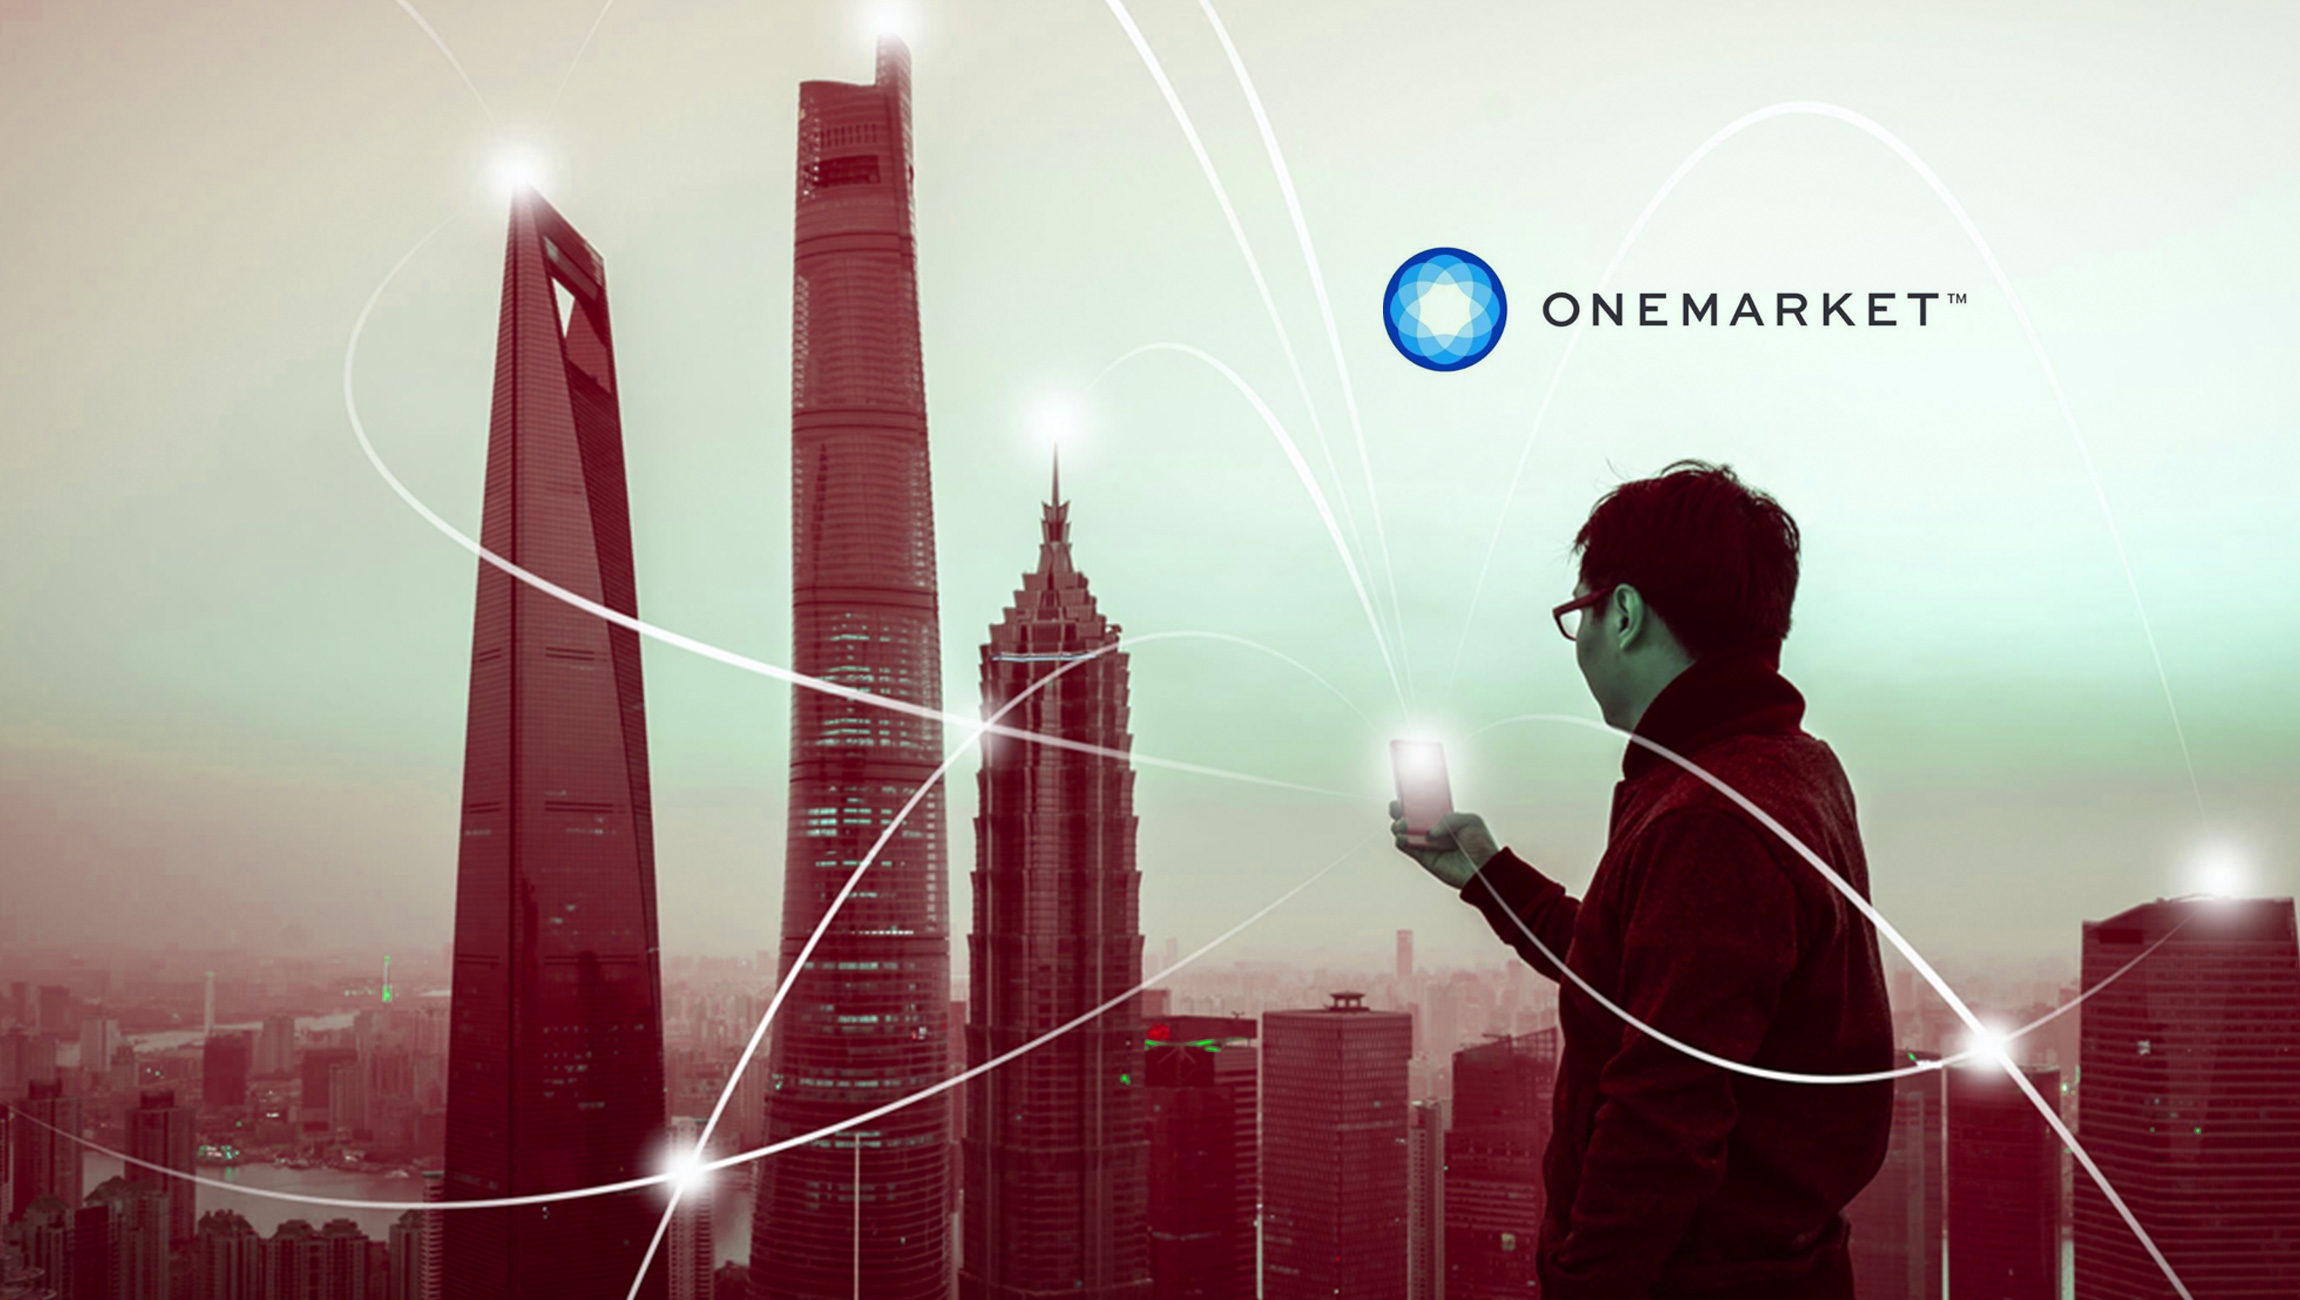 OneMarket Introduces Customer Activation Platform Dedicated to Retail